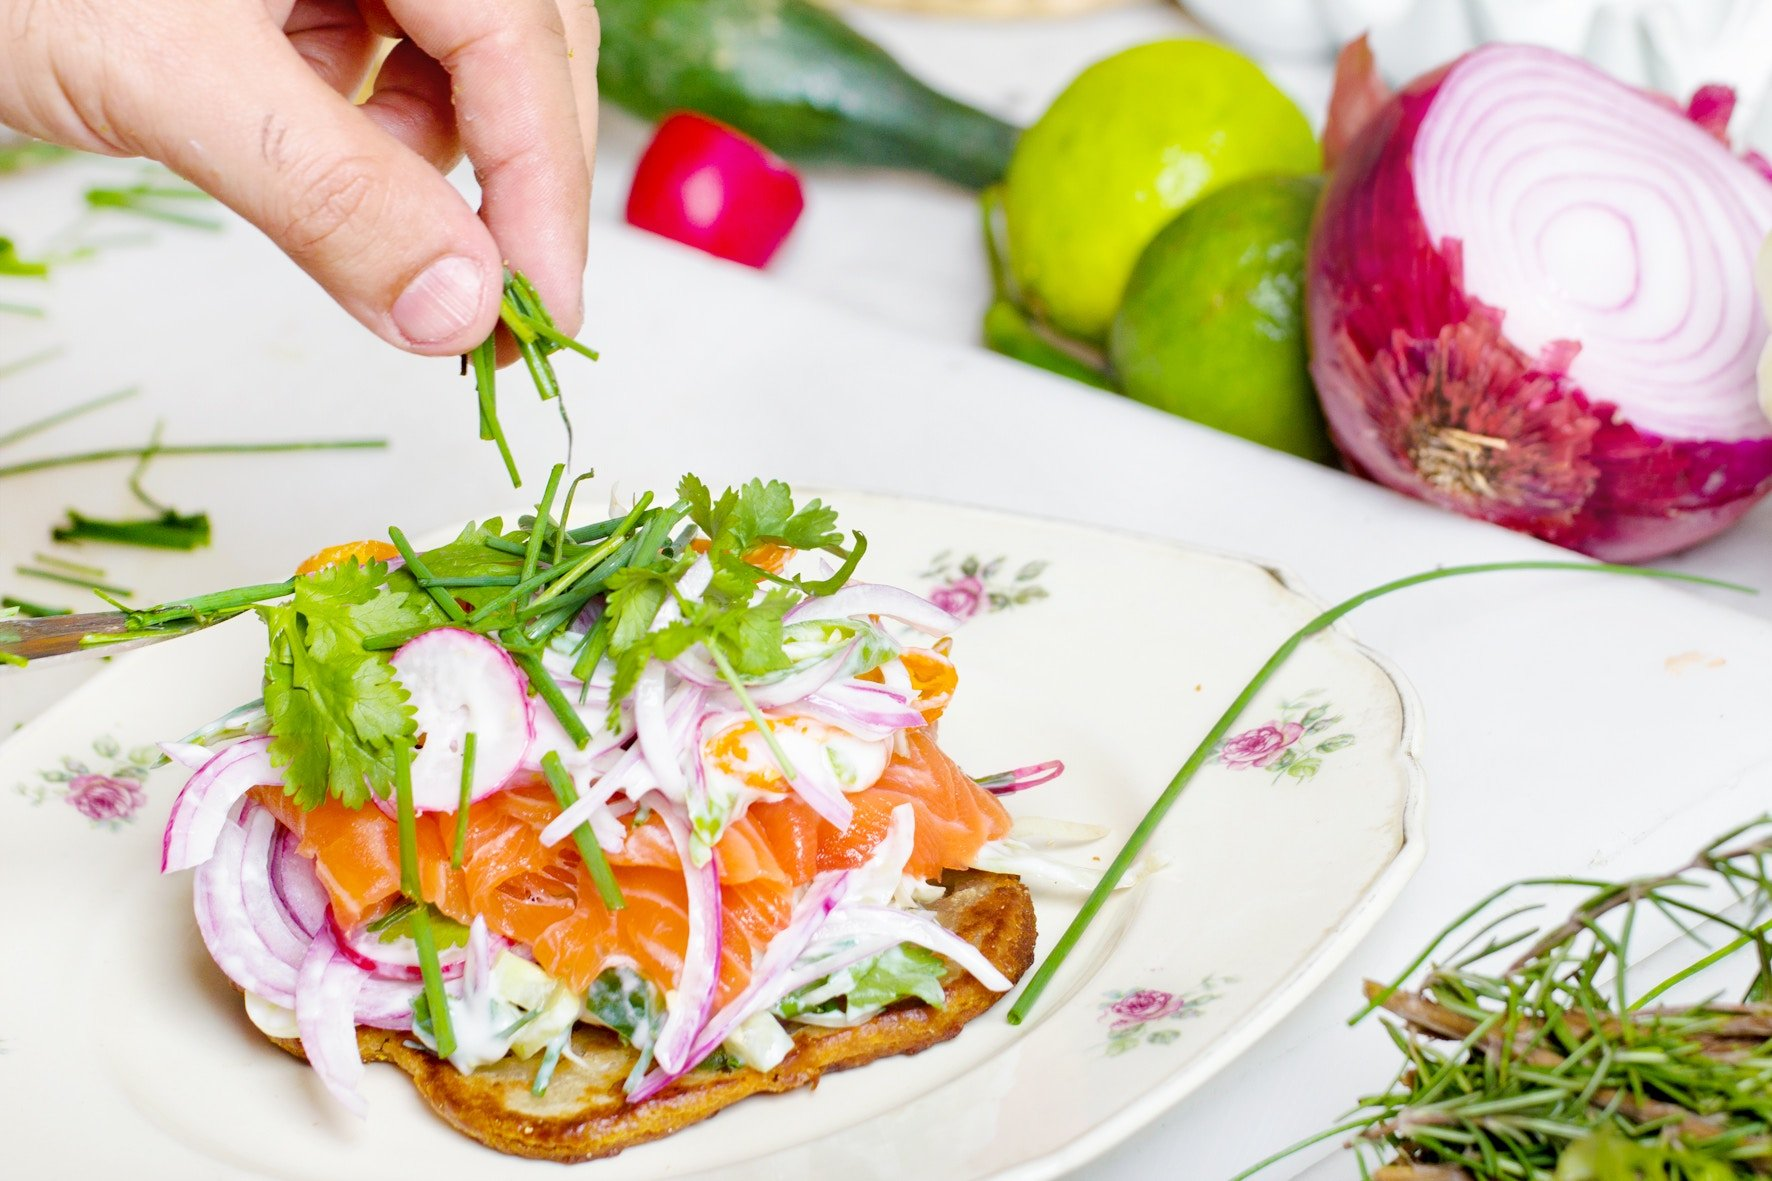 Choline: An Essential Nutrient For Your Health